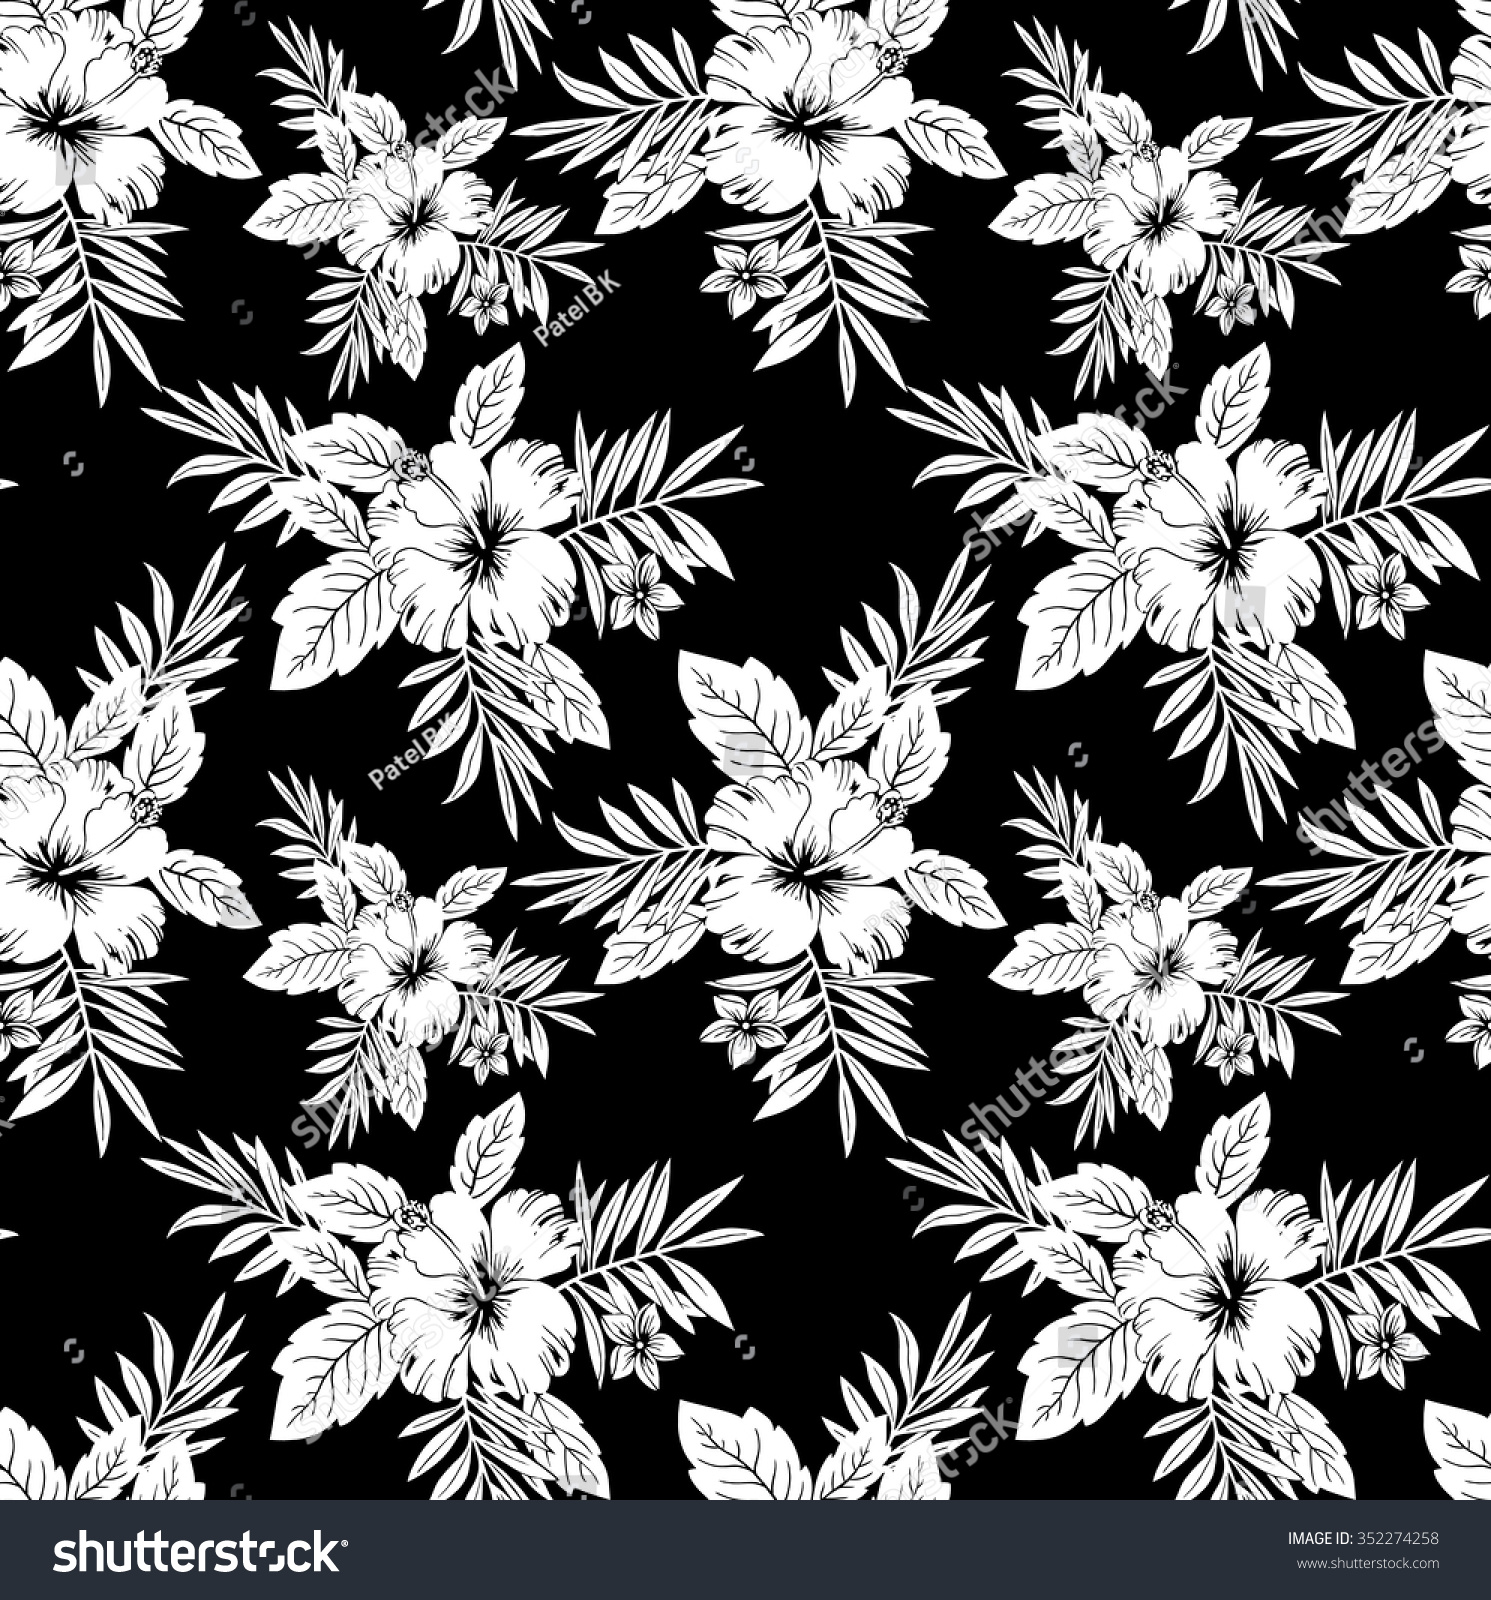 Seamless Black White Floral Wallpaper Stock Vector 352274258